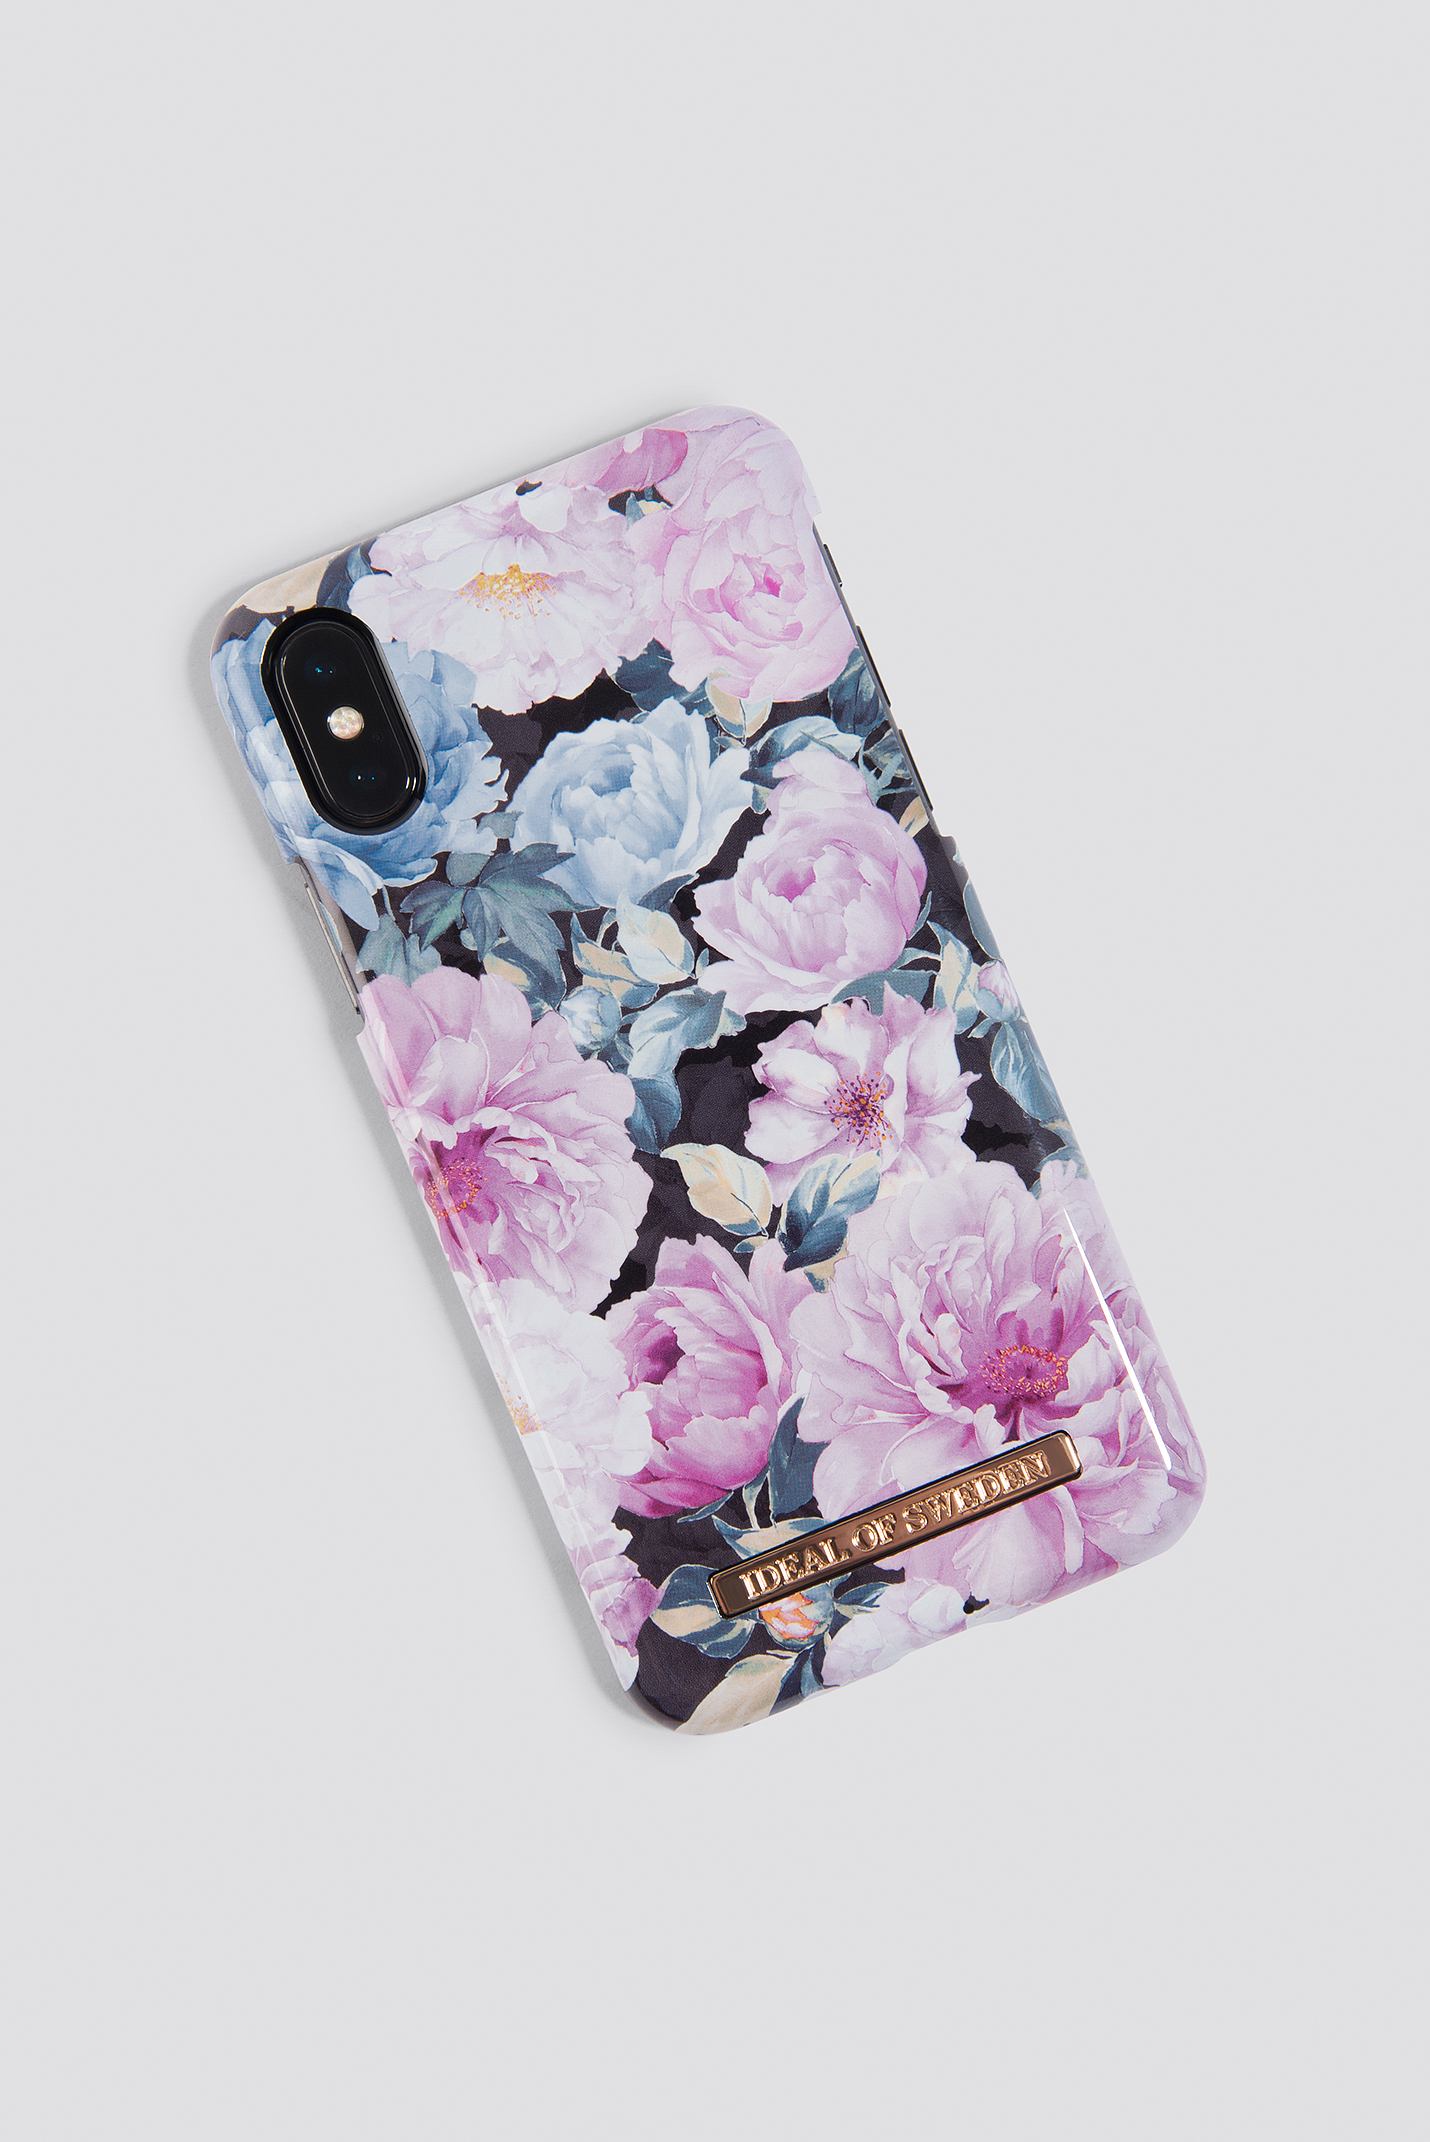 IDEAL OF SWEDEN PEONY GARDEN IPHONE X CASE - PINK, MULTICOLOR